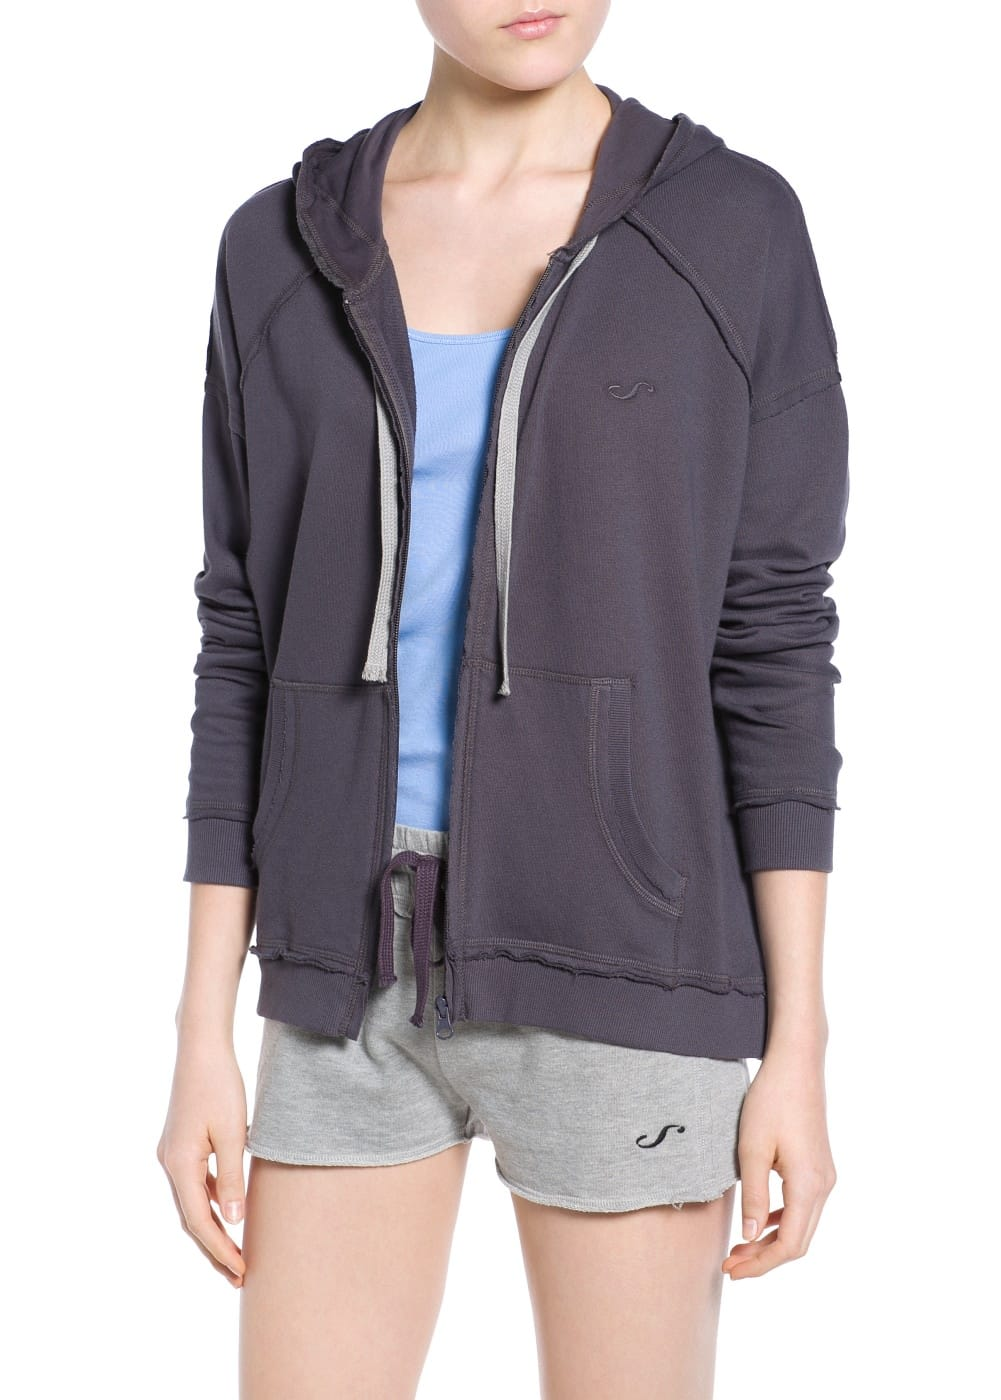 Yoga - Relaxed hoodie